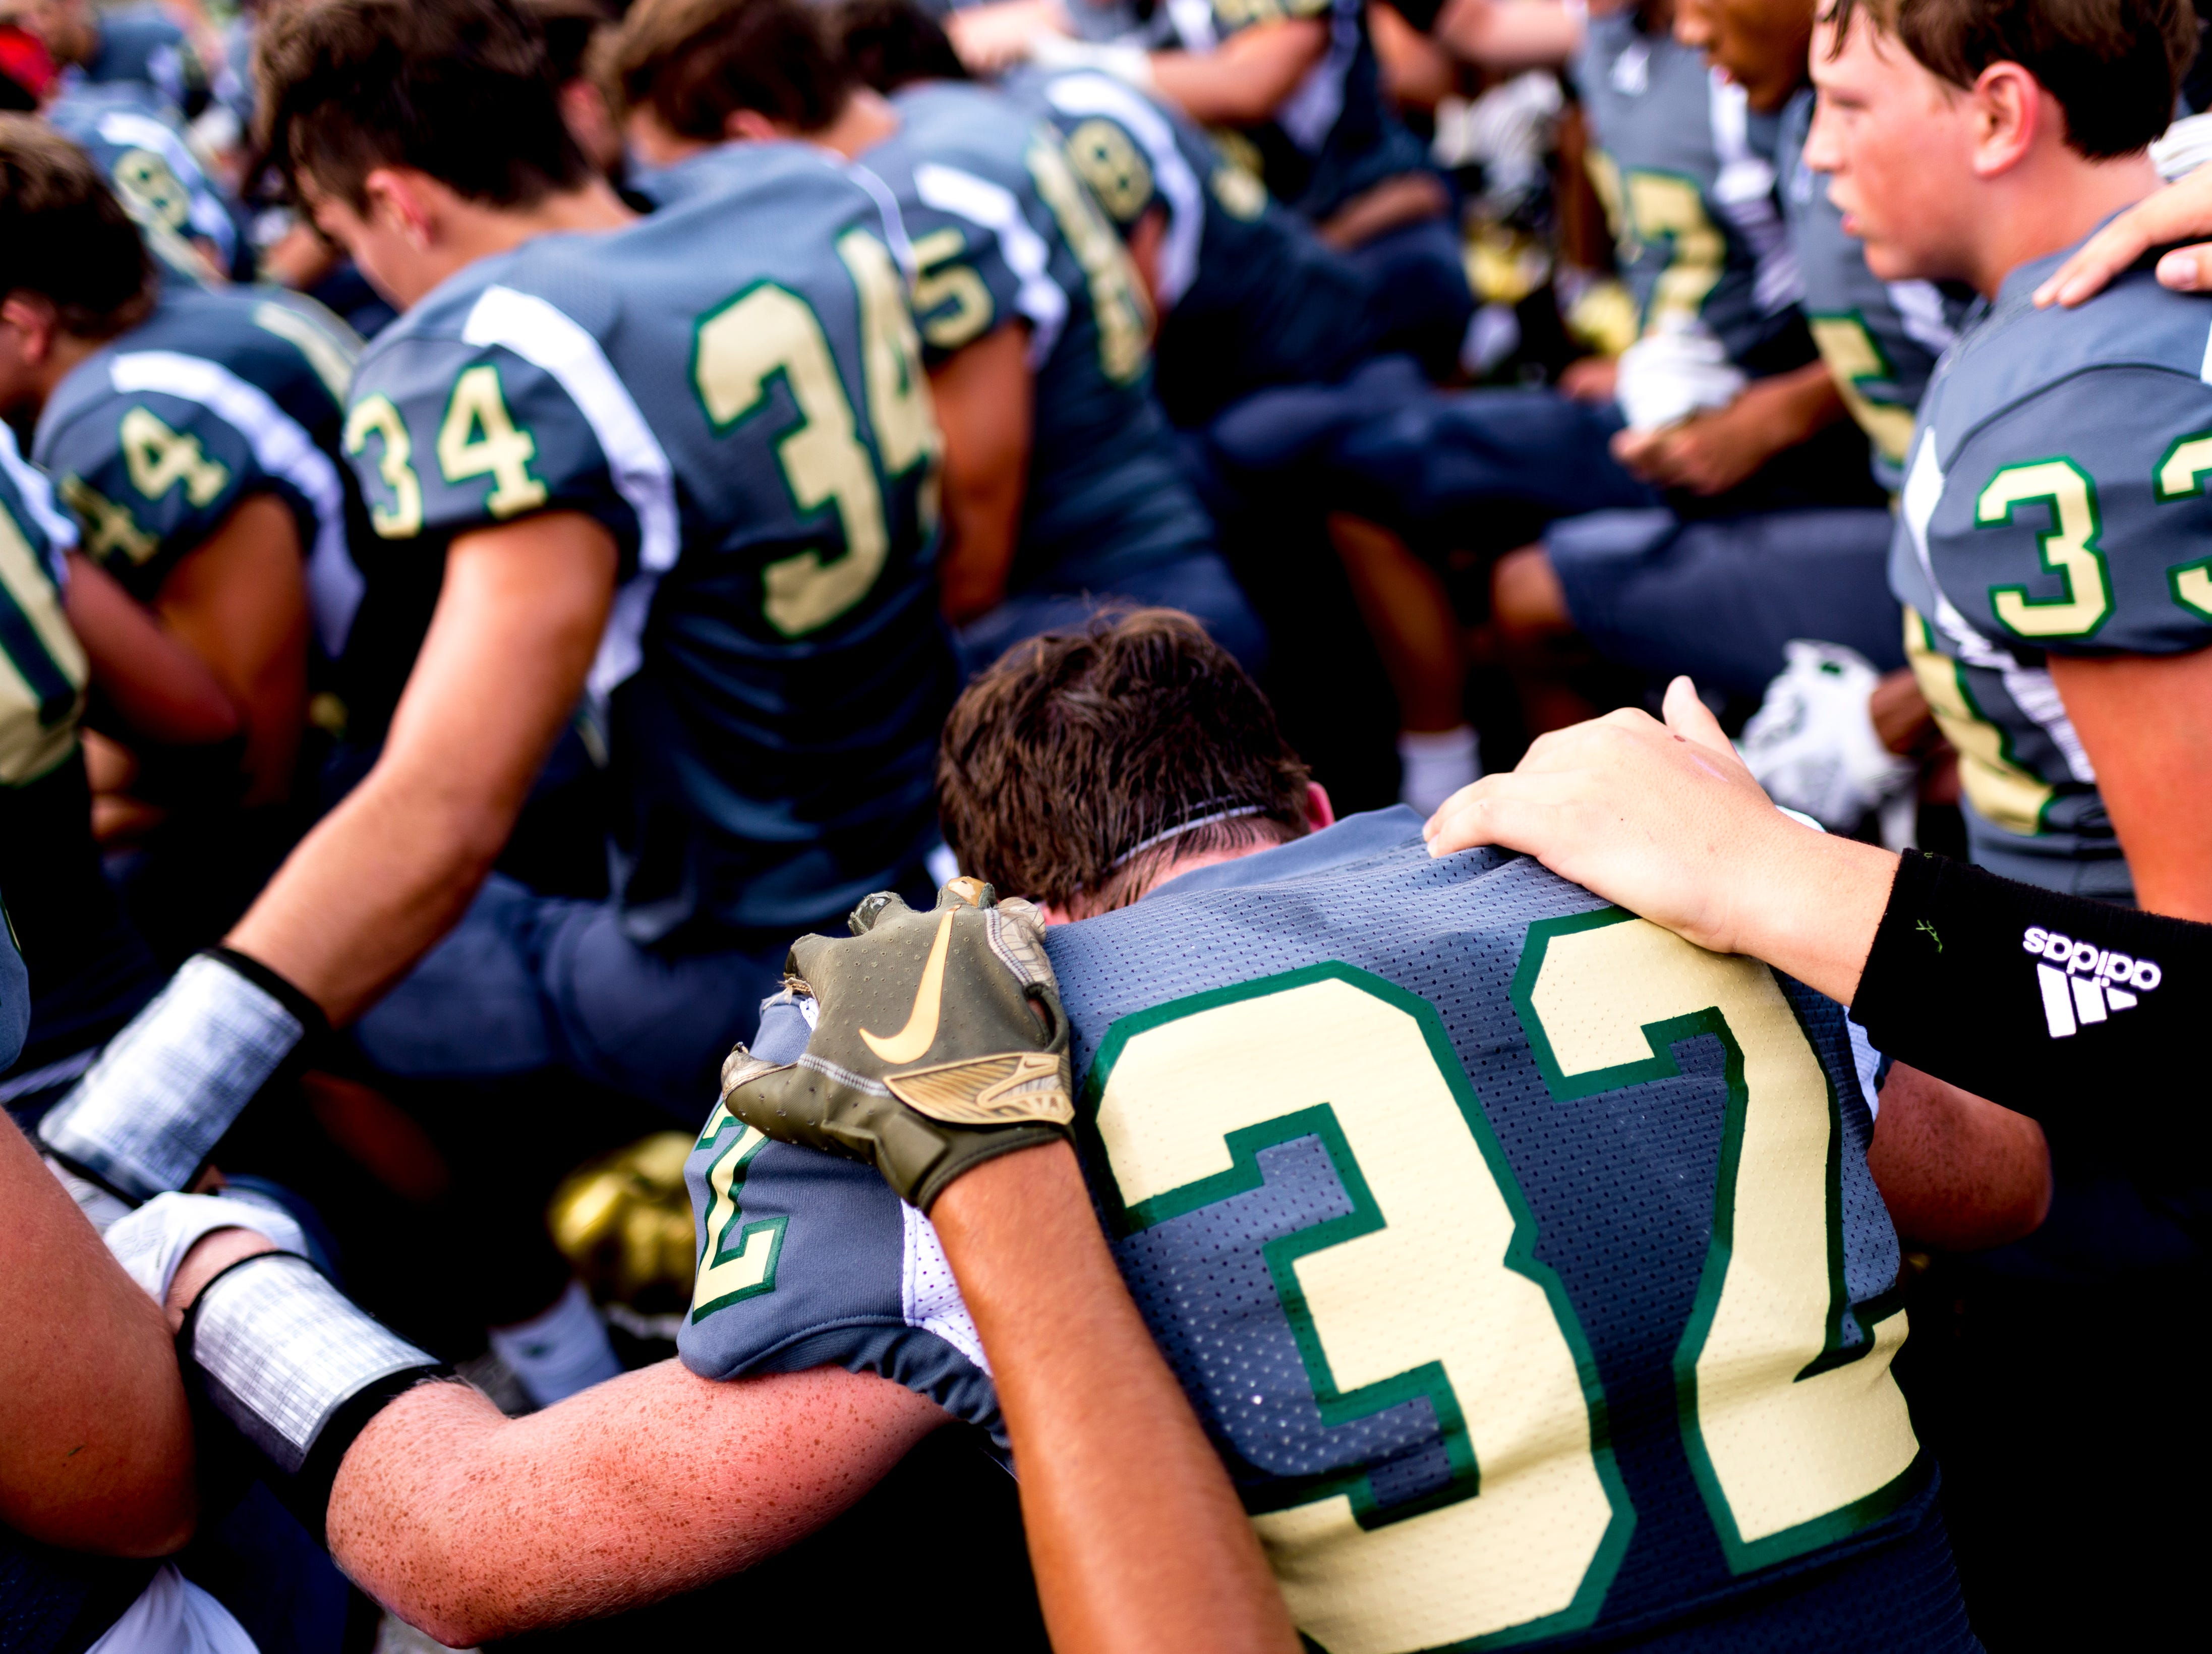 Catholic's Spencer Margolis (32) says a prayer with fellow teammates during a football game between Maryville and Catholic at Catholic High School in Knoxville, Tennessee on Friday, August 17, 2018.